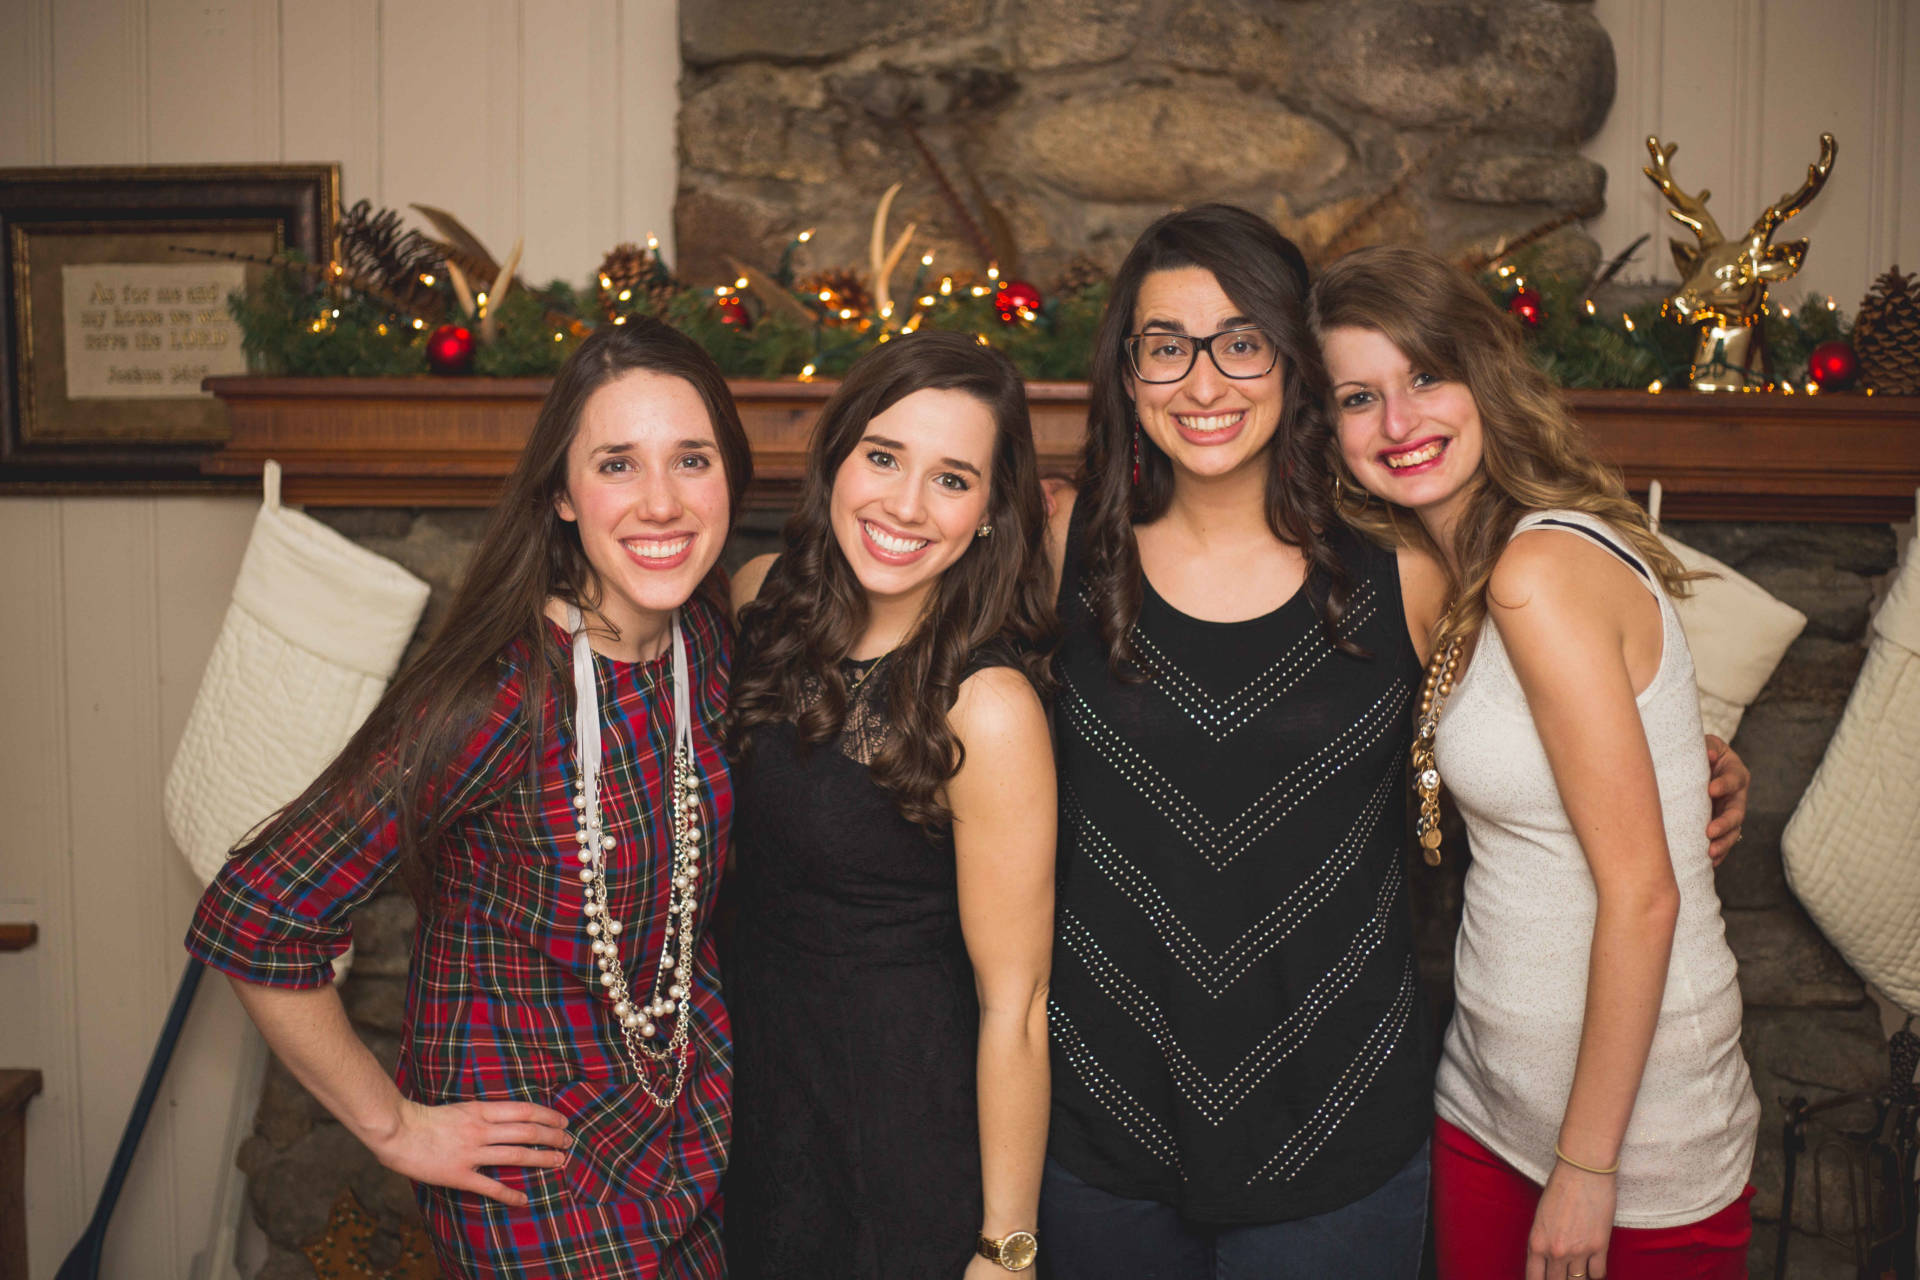 The Laurel Dress in Plaid - Cousins! Christmas Eve 2015